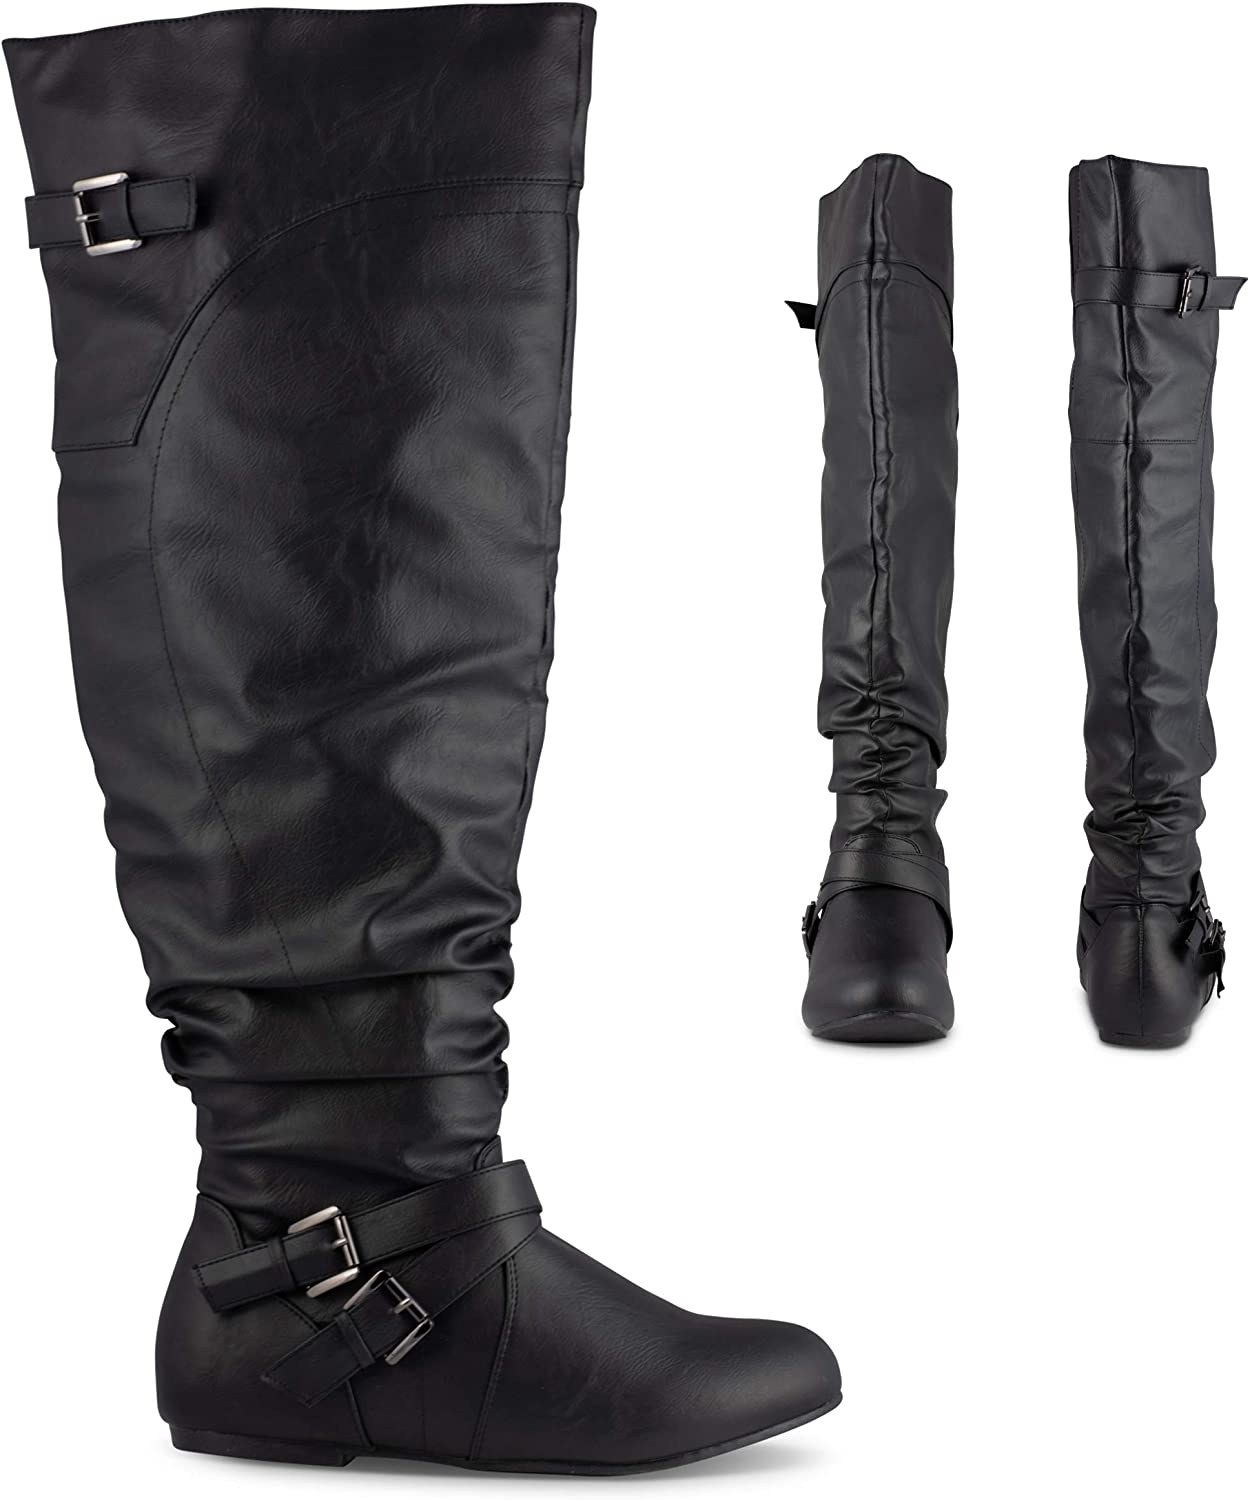 The Knee Faux Leather Fashion Boot